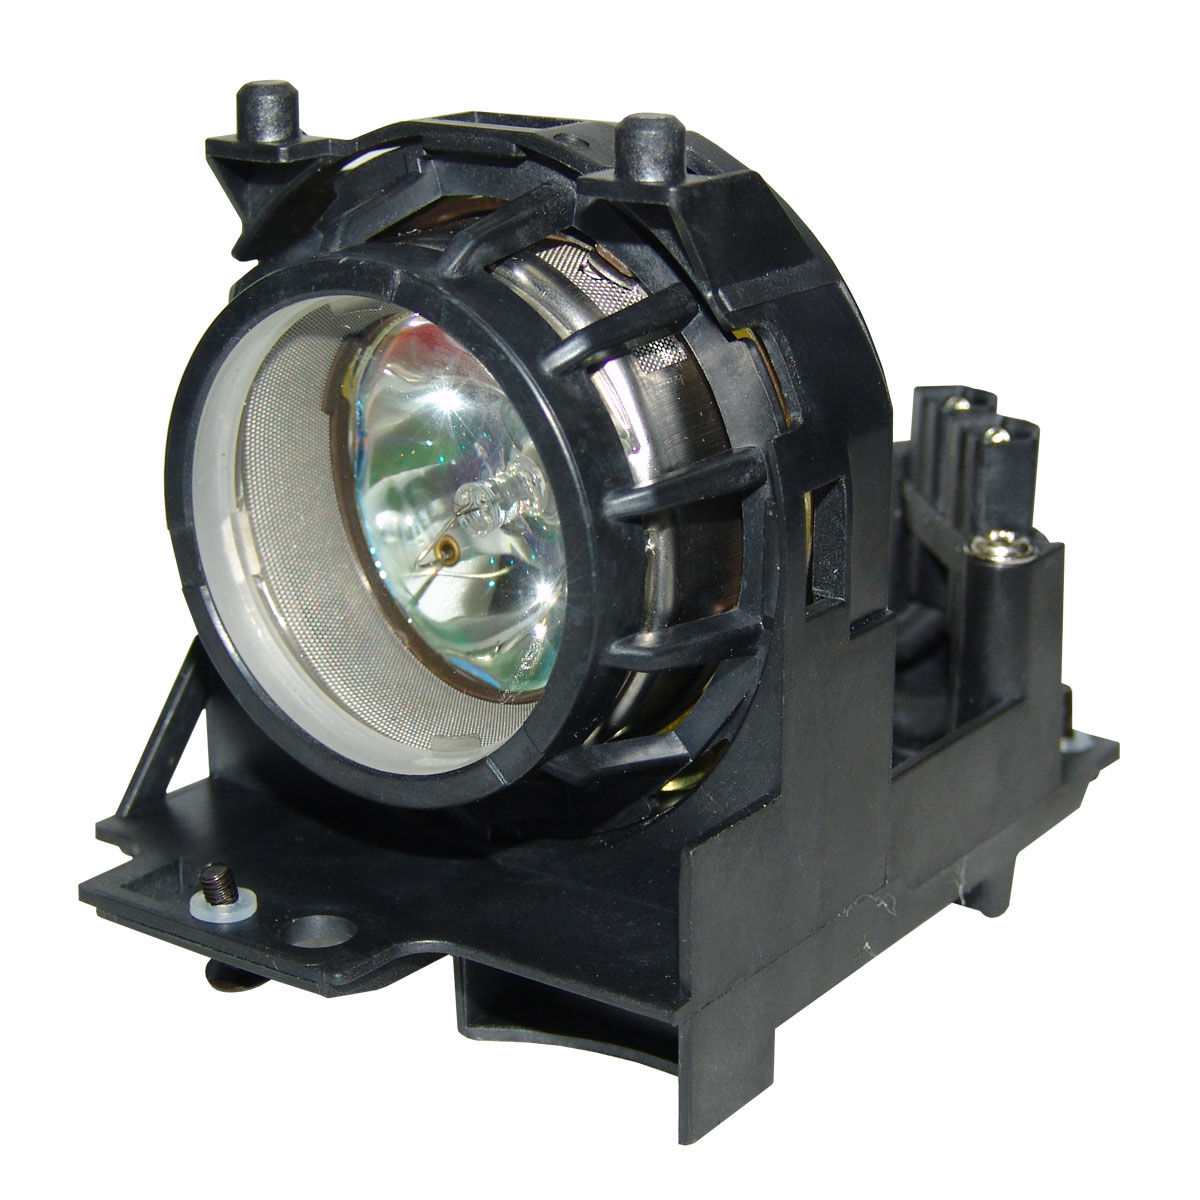 Lamp Housing For 3M 78696996939 / 78696996939 Projector DLP LCD Bulb